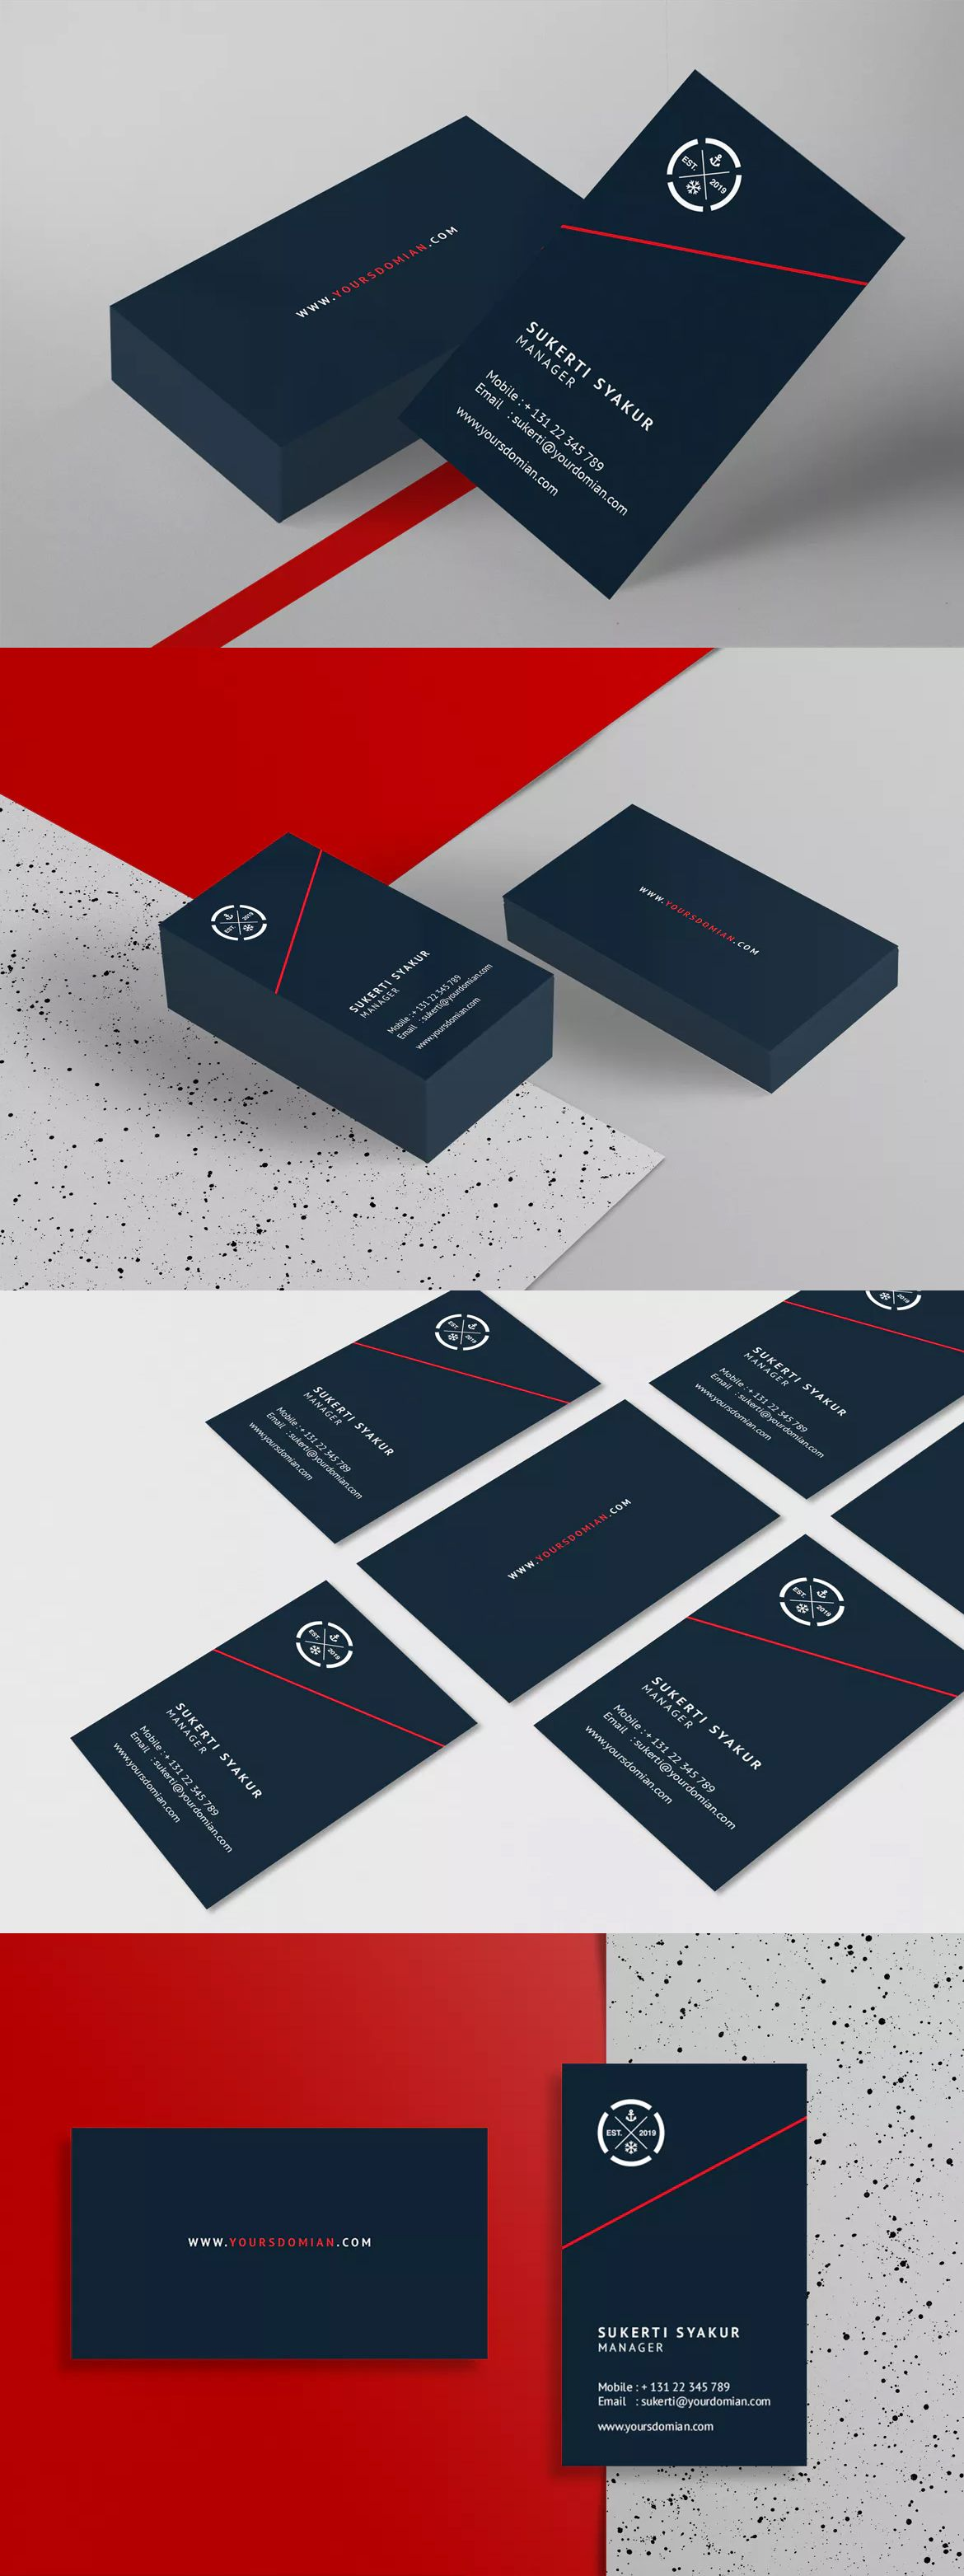 Business Card Template InDesign INDD #unlimiteddownloads | Ideas ...